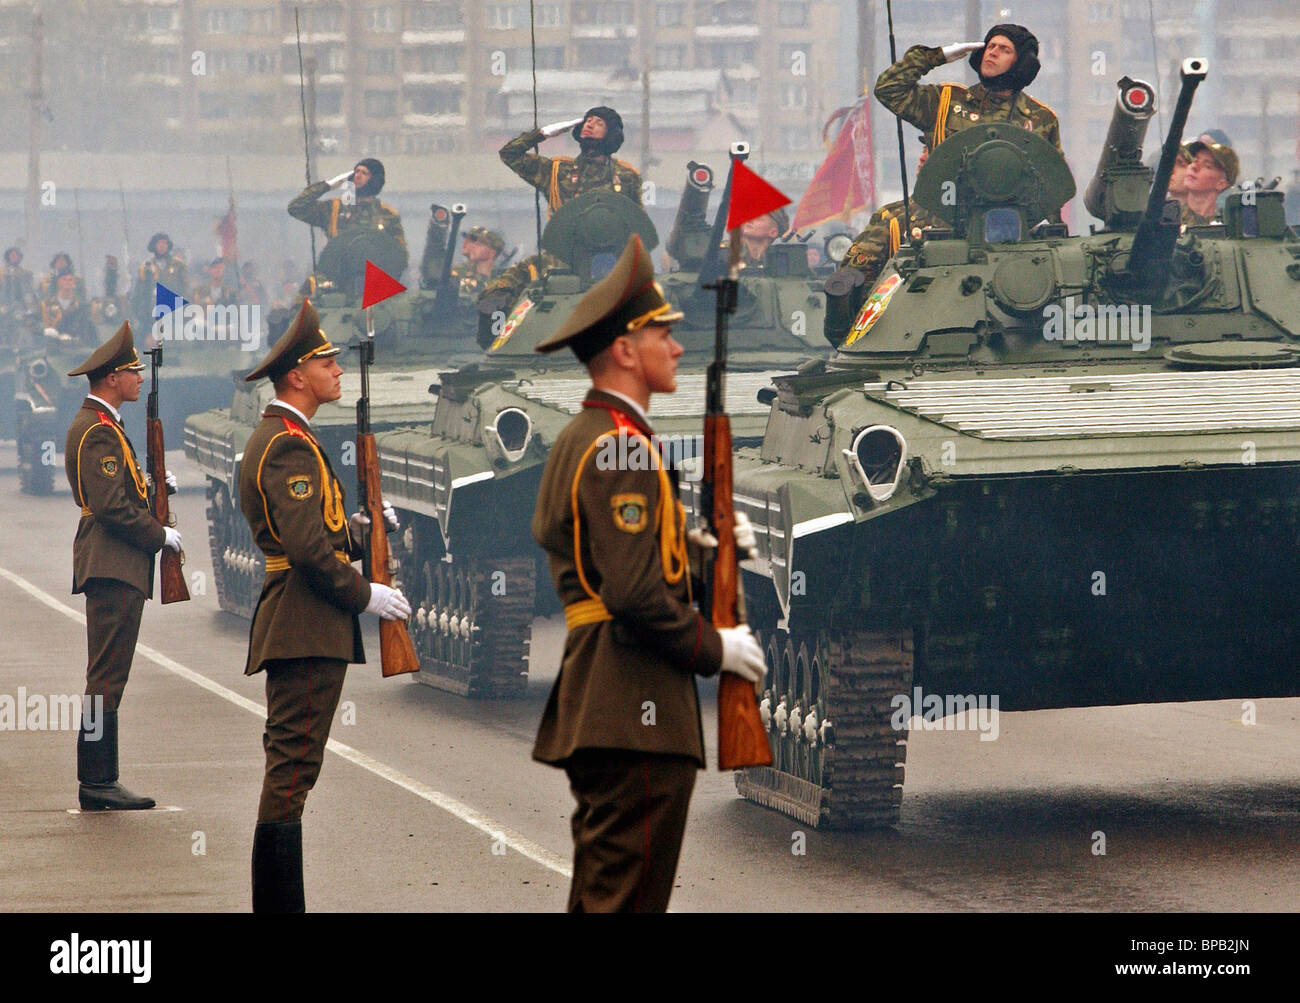 CIS countries celebrate Victory Day - Stock Image